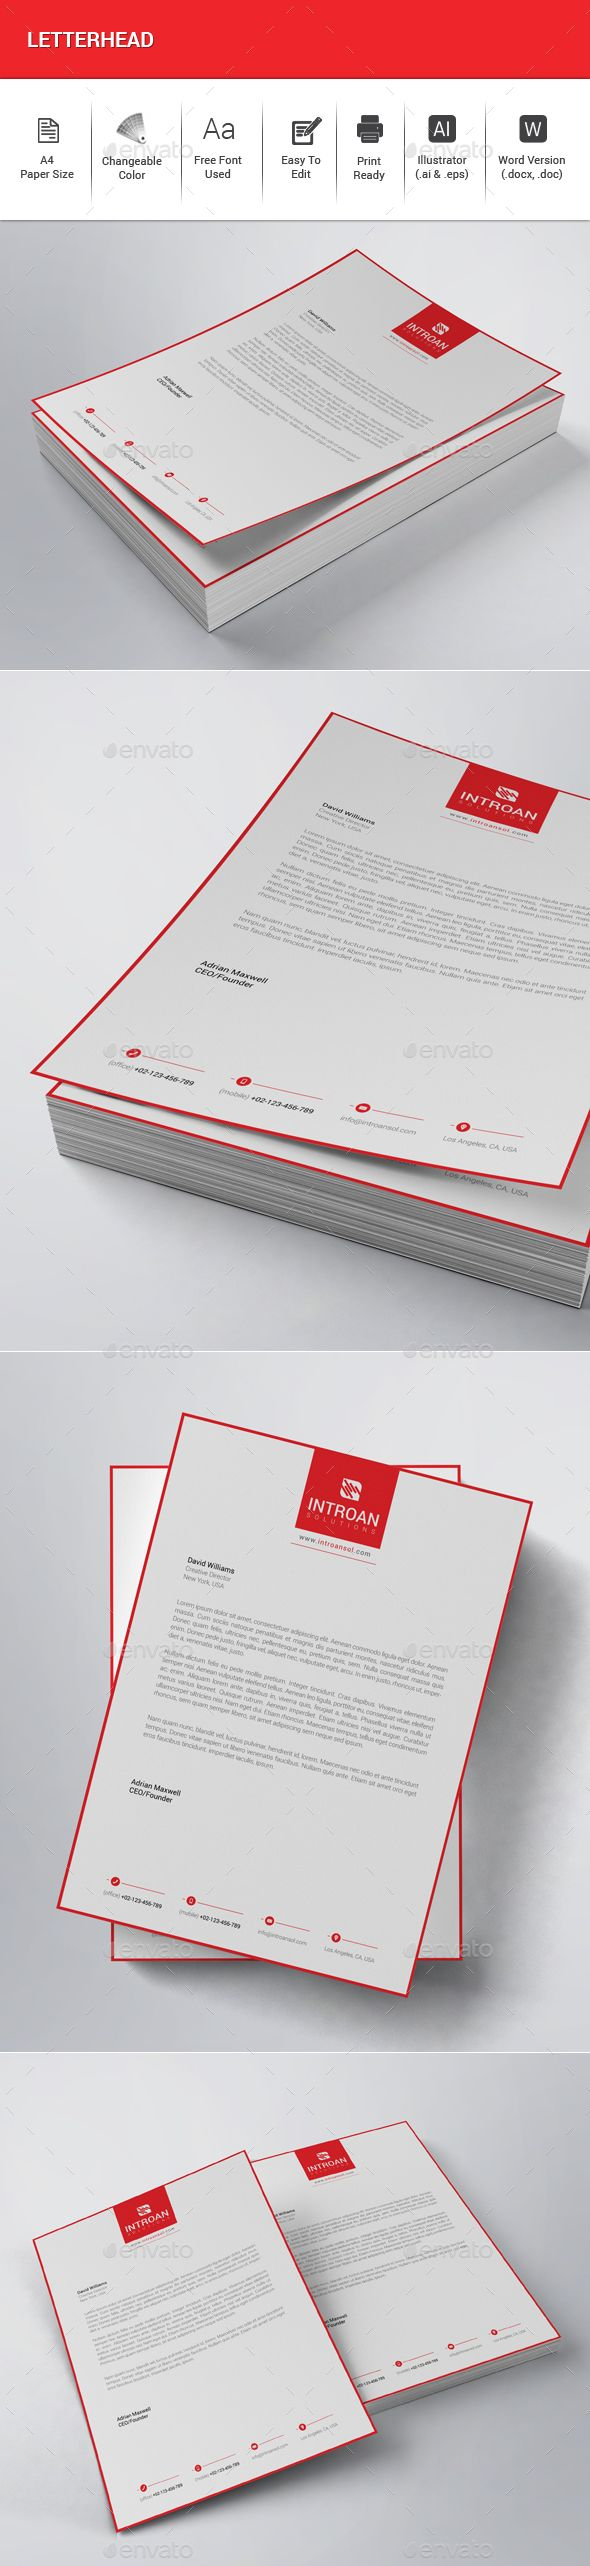 Letterhead - #Stationery #Print Templates Download here: https://graphicriver.net/item/letterhead/20041960?ref=alena994